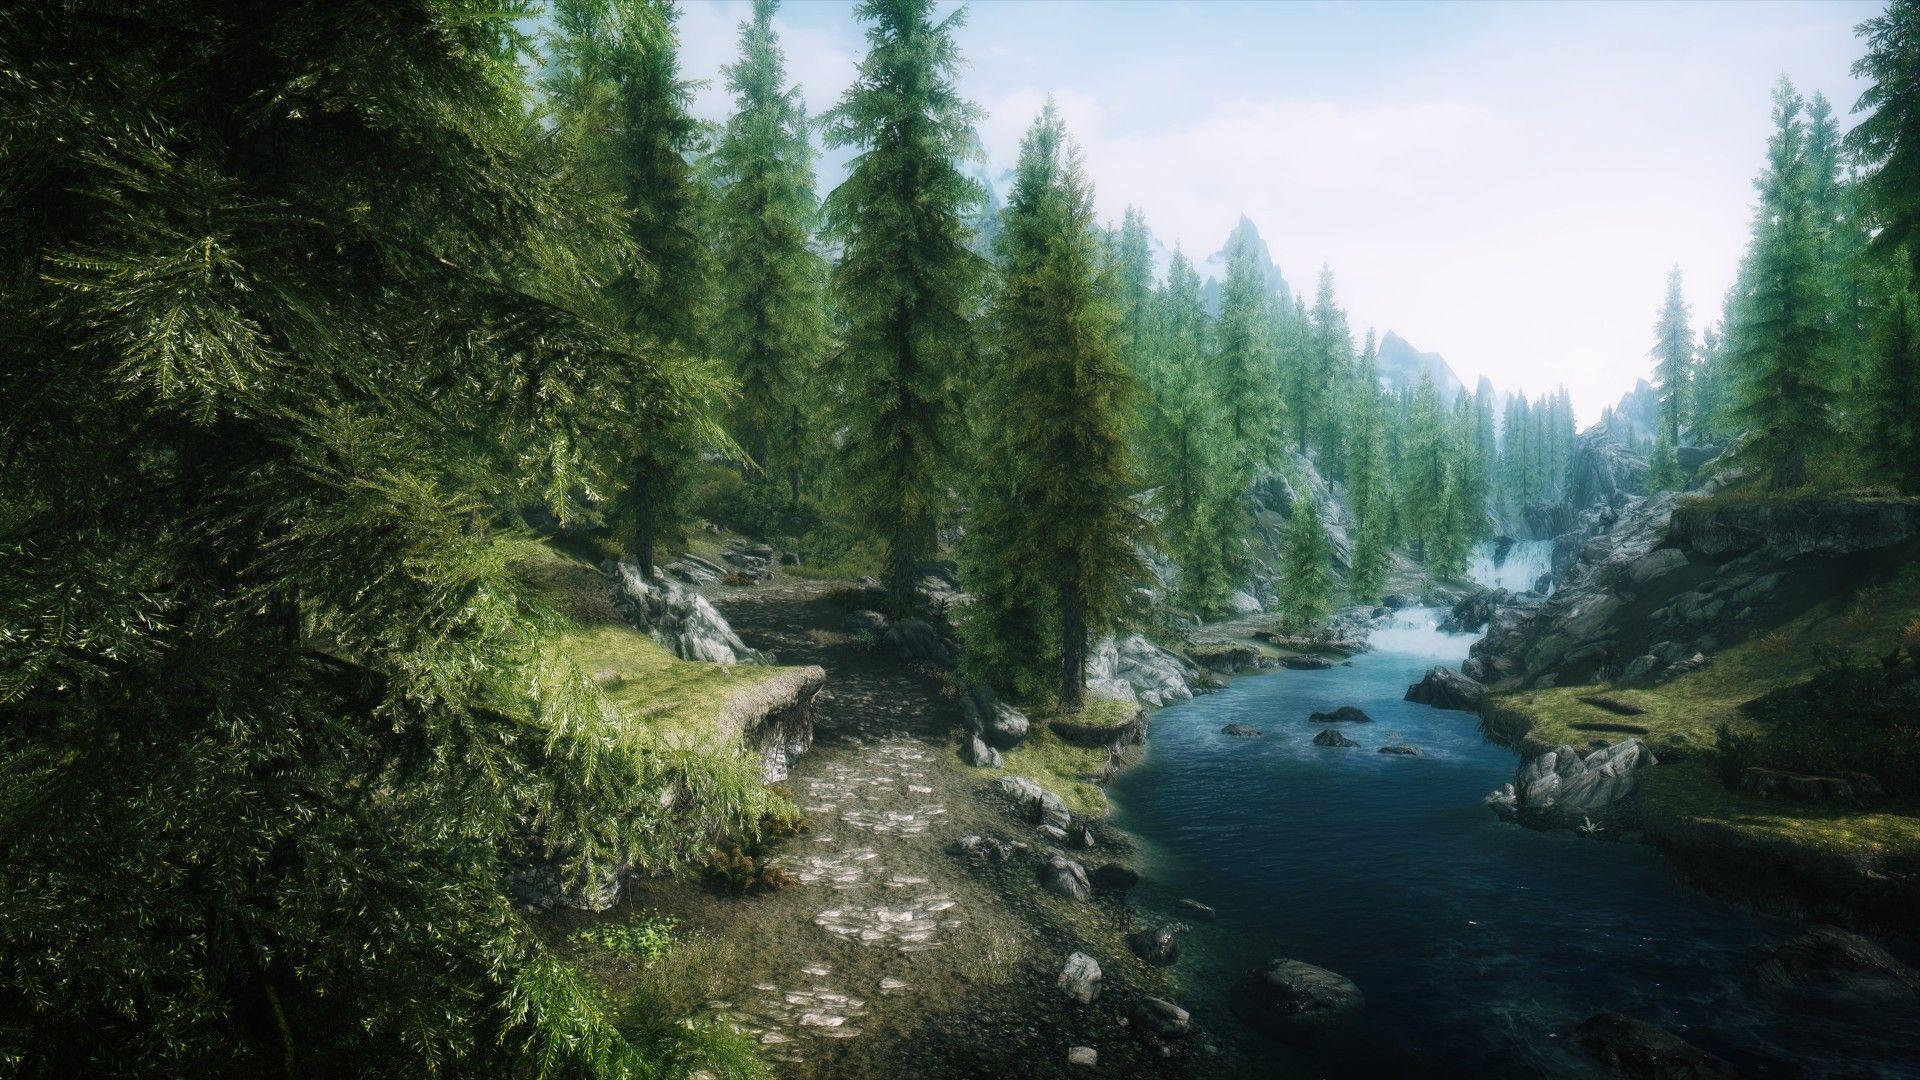 skyrim 1980 x 1040 wallpaper - photo #45